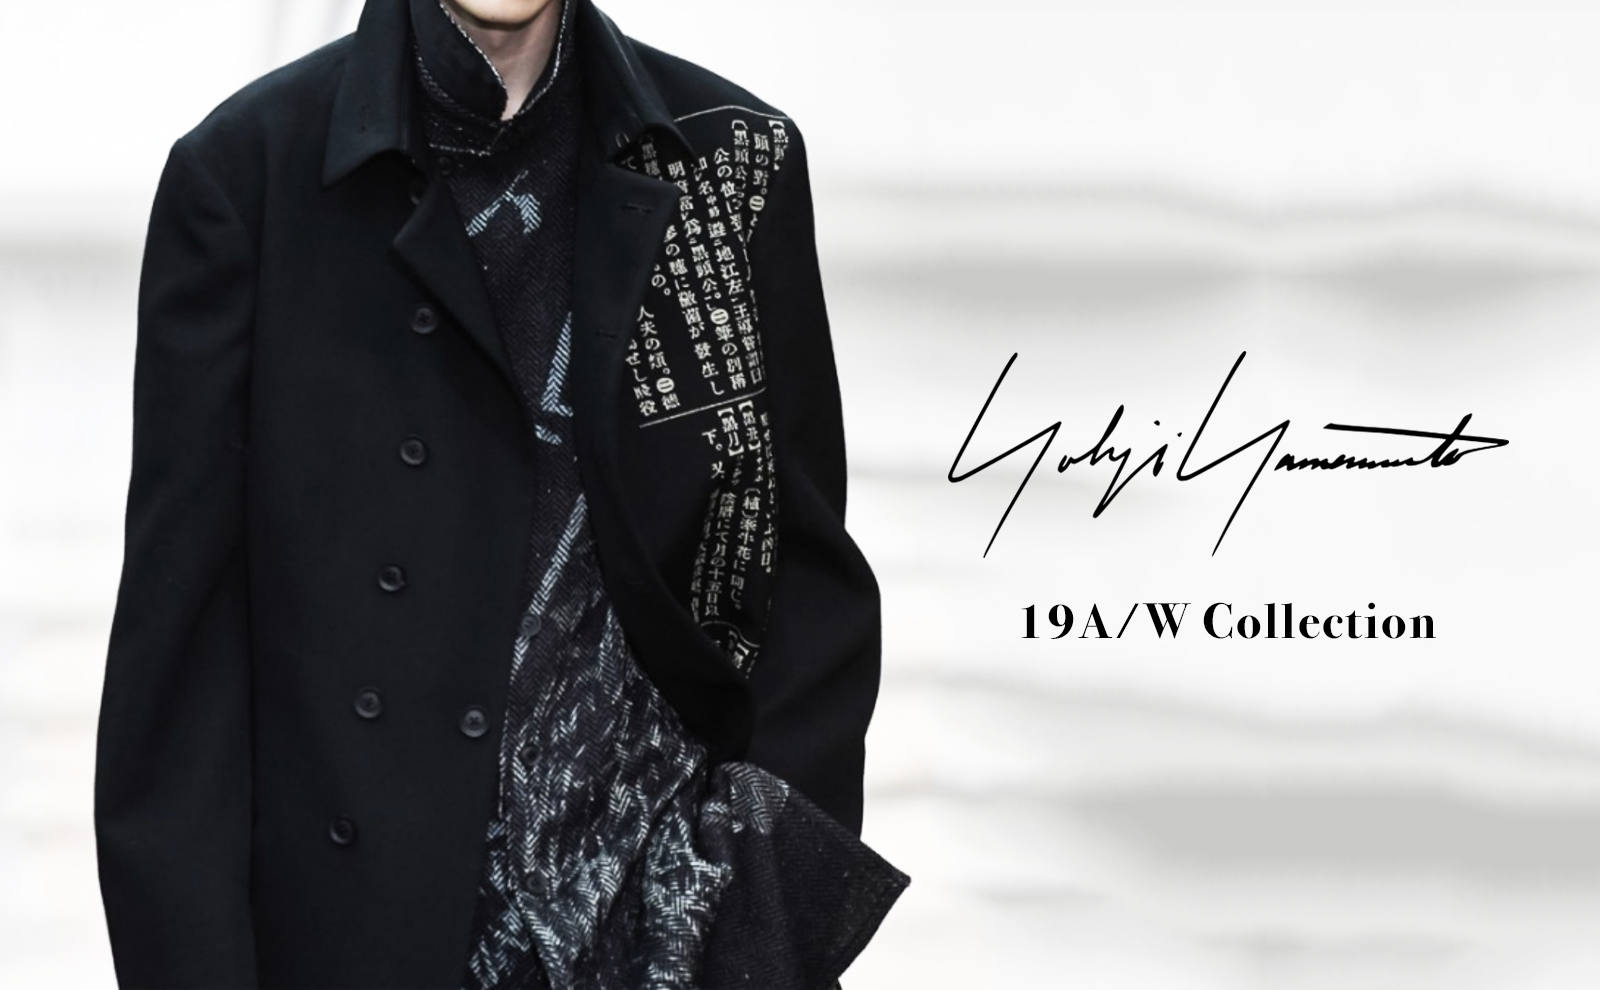 19A/W Collection